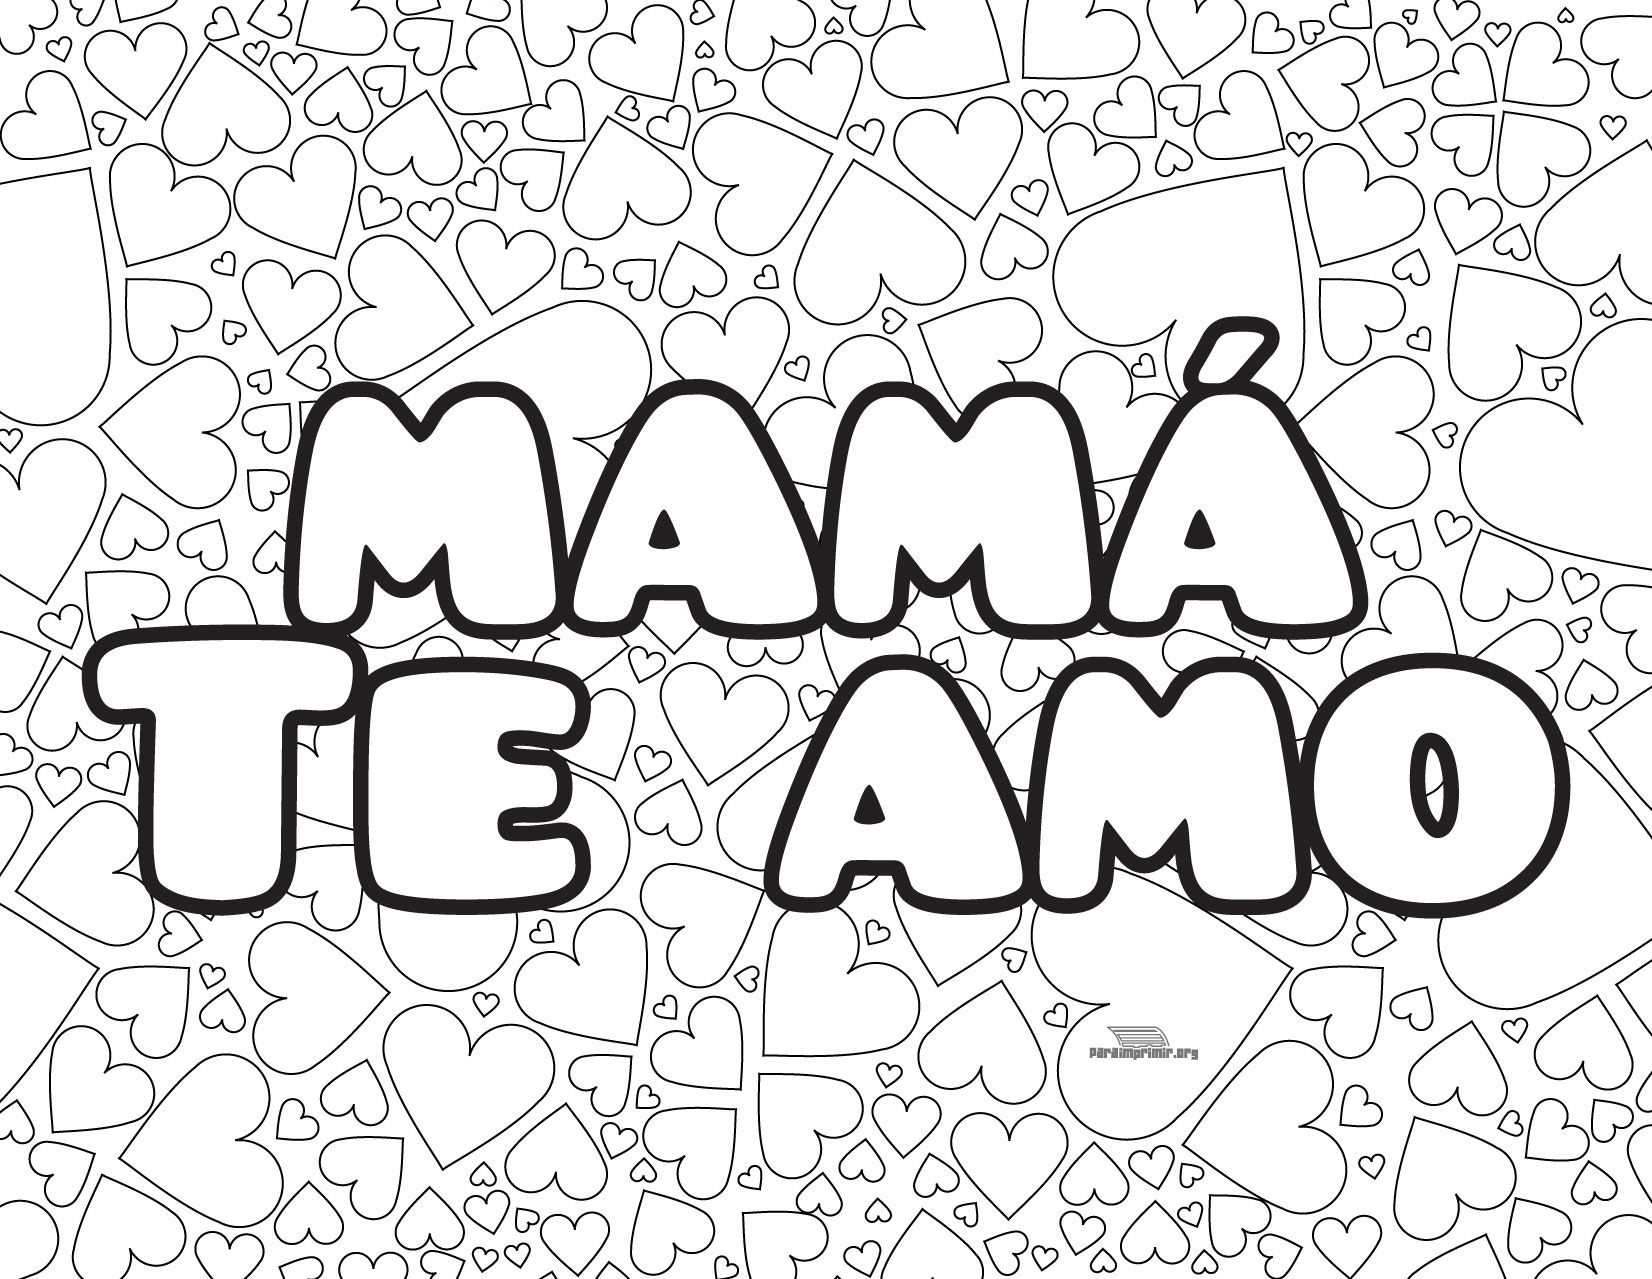 feliz dia mami te amo coloring sheet Google Search Life with our